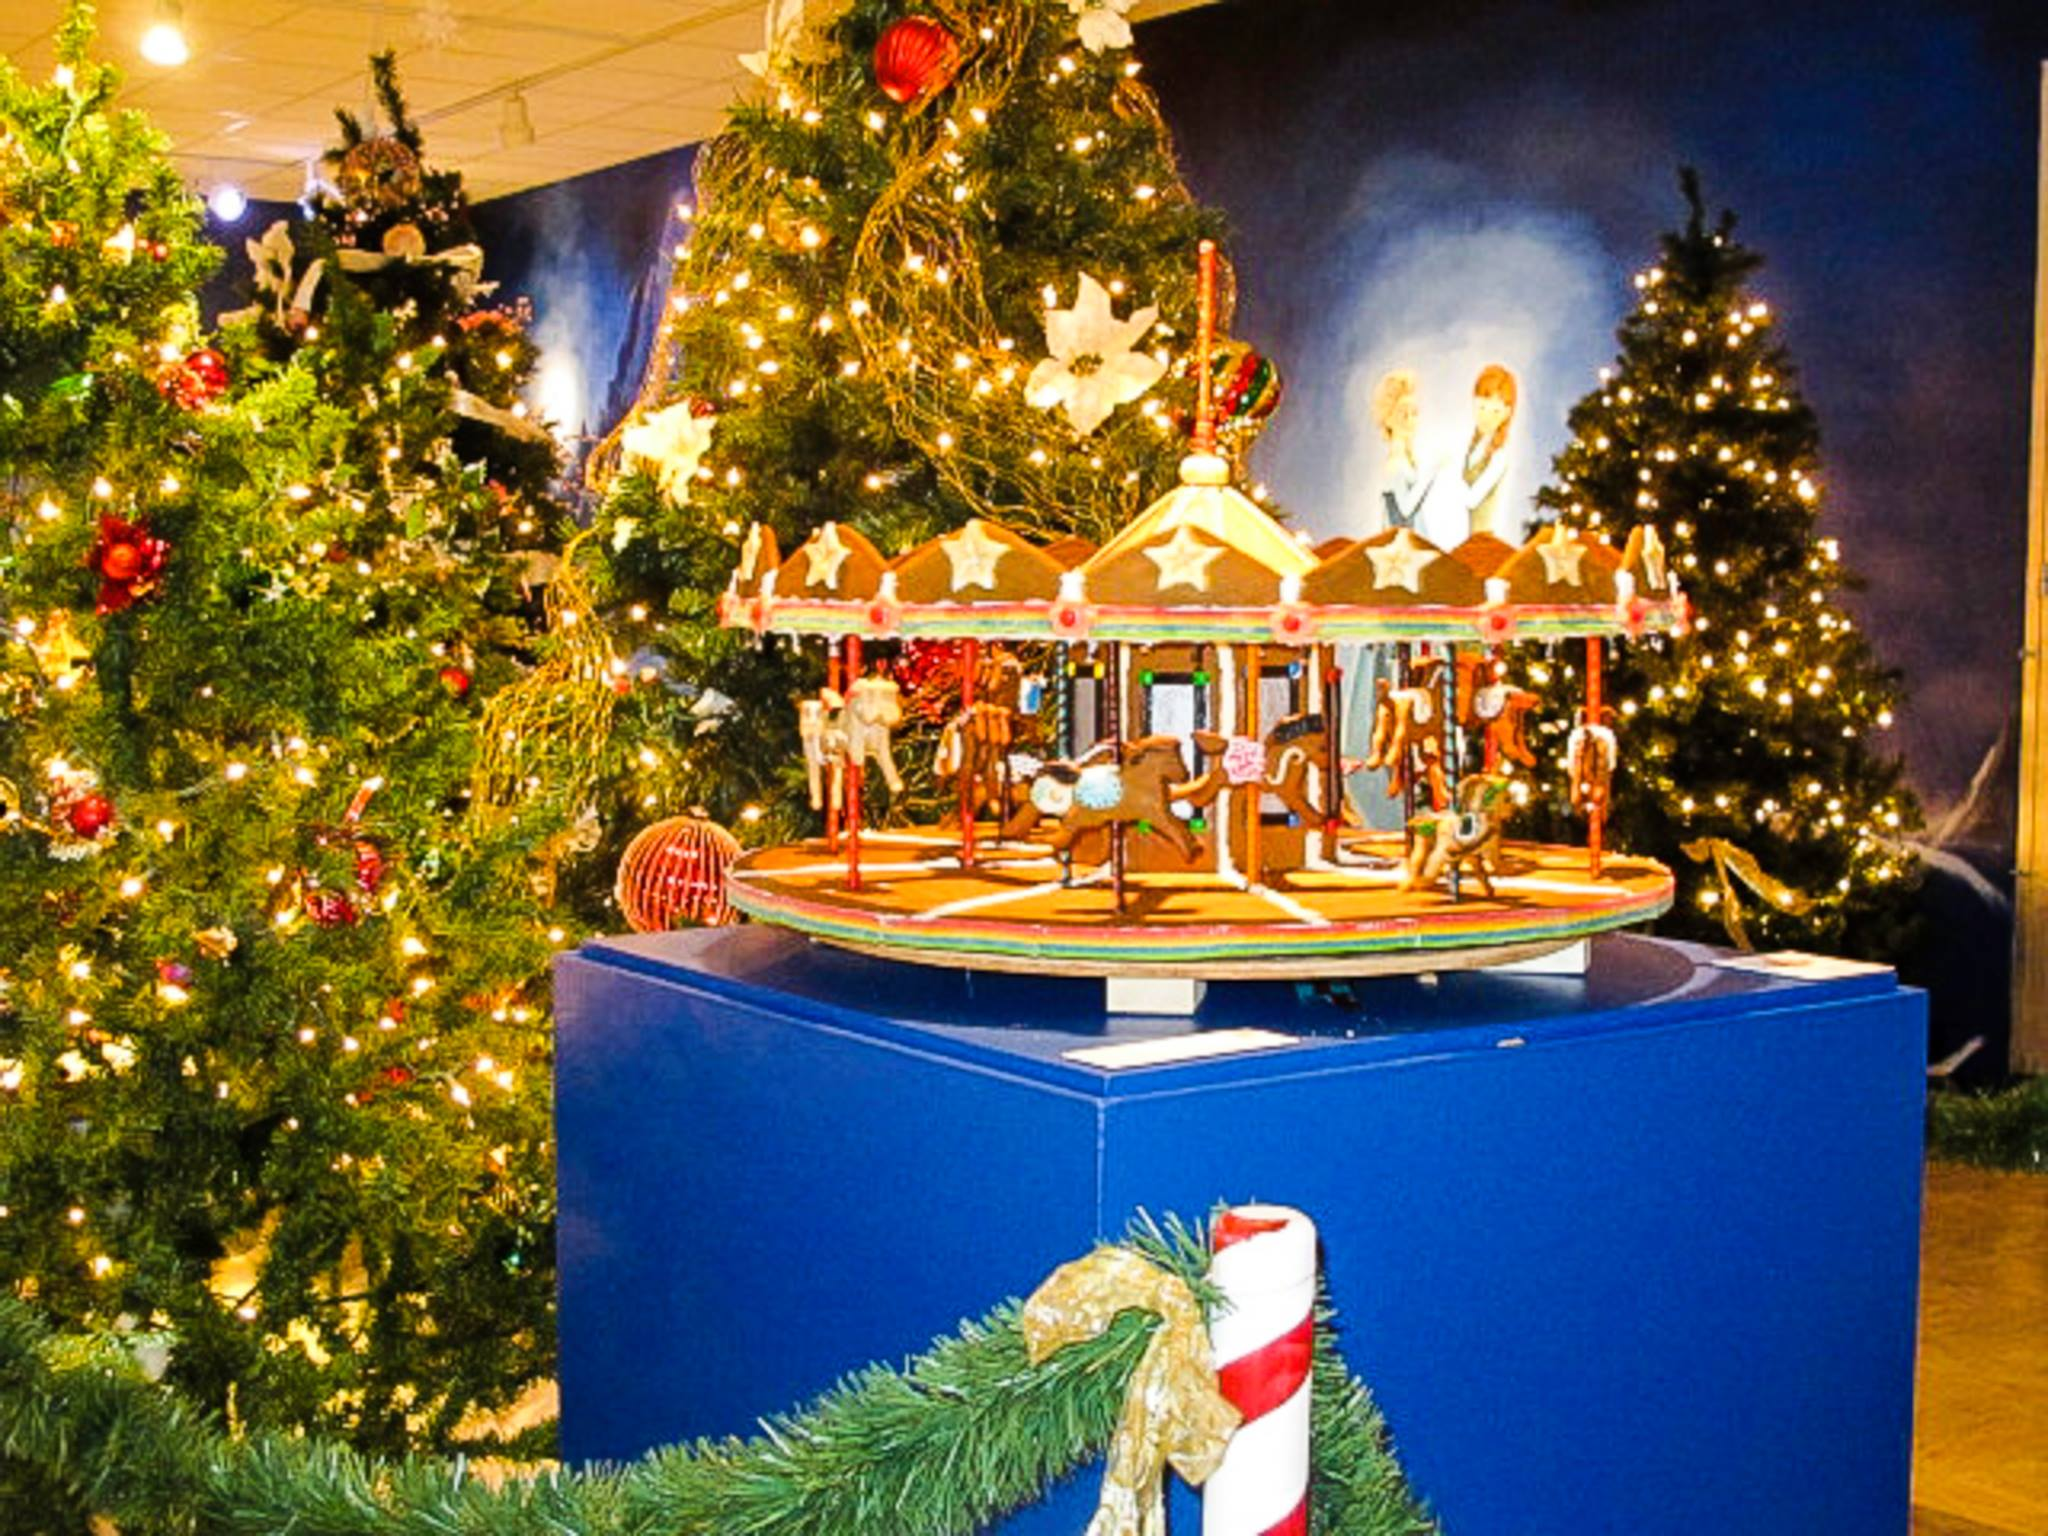 Springfield Museums Usher In The Holidays With Gingerbread Exhibit, Family Programs